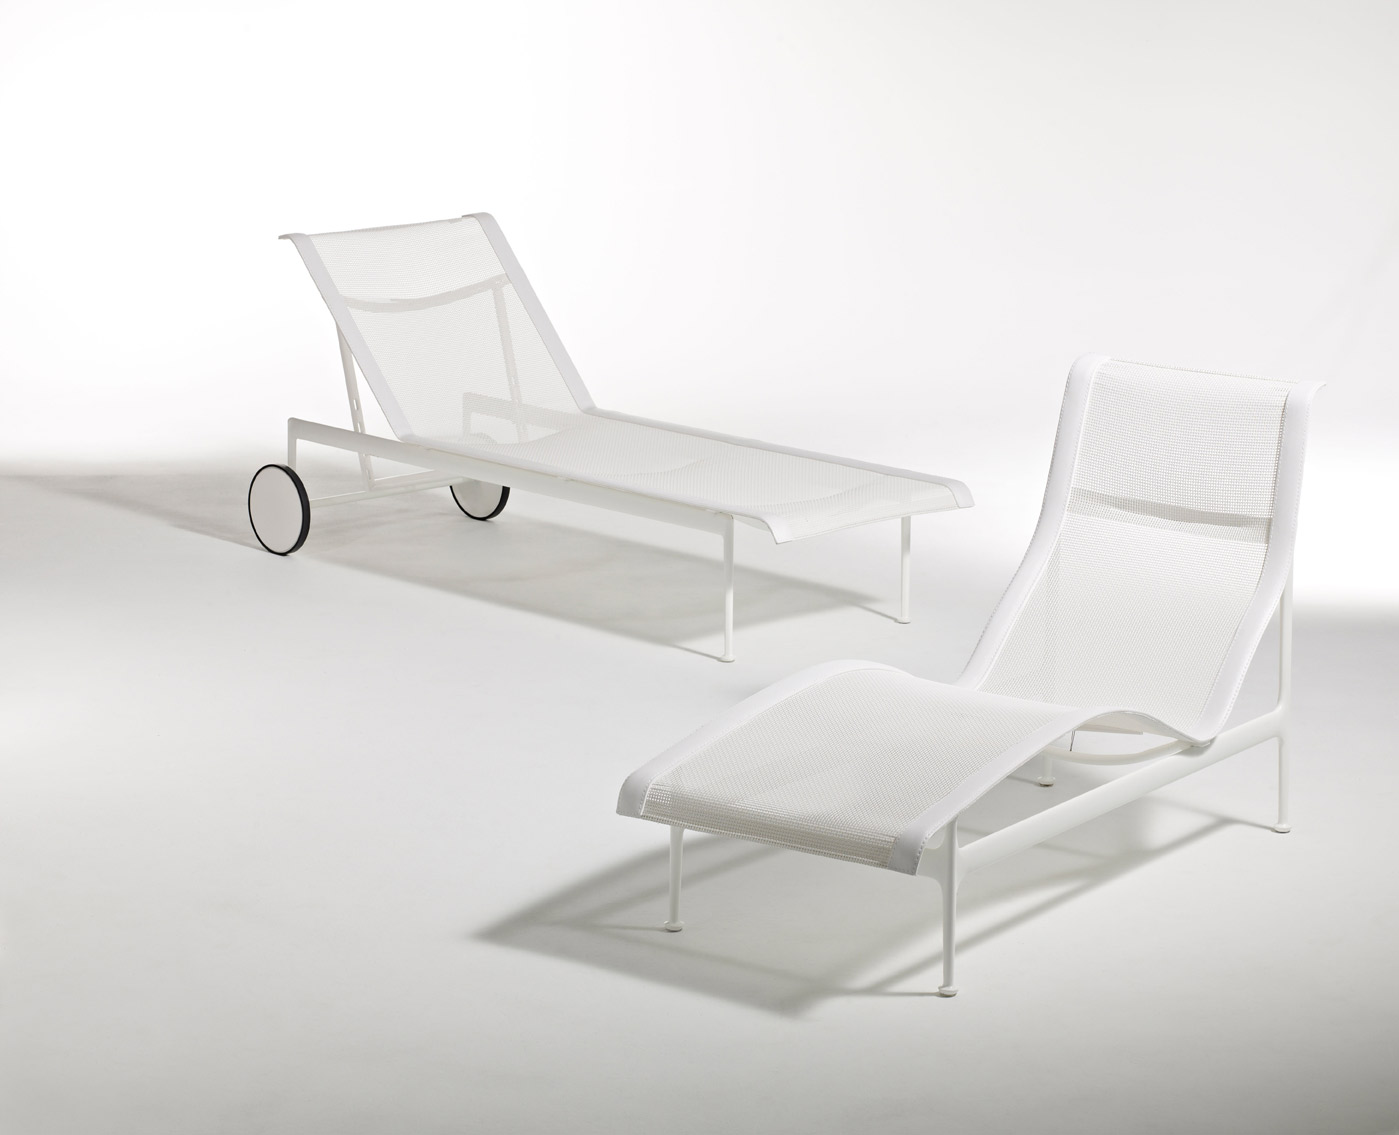 Patio furniture by Richard Schultz